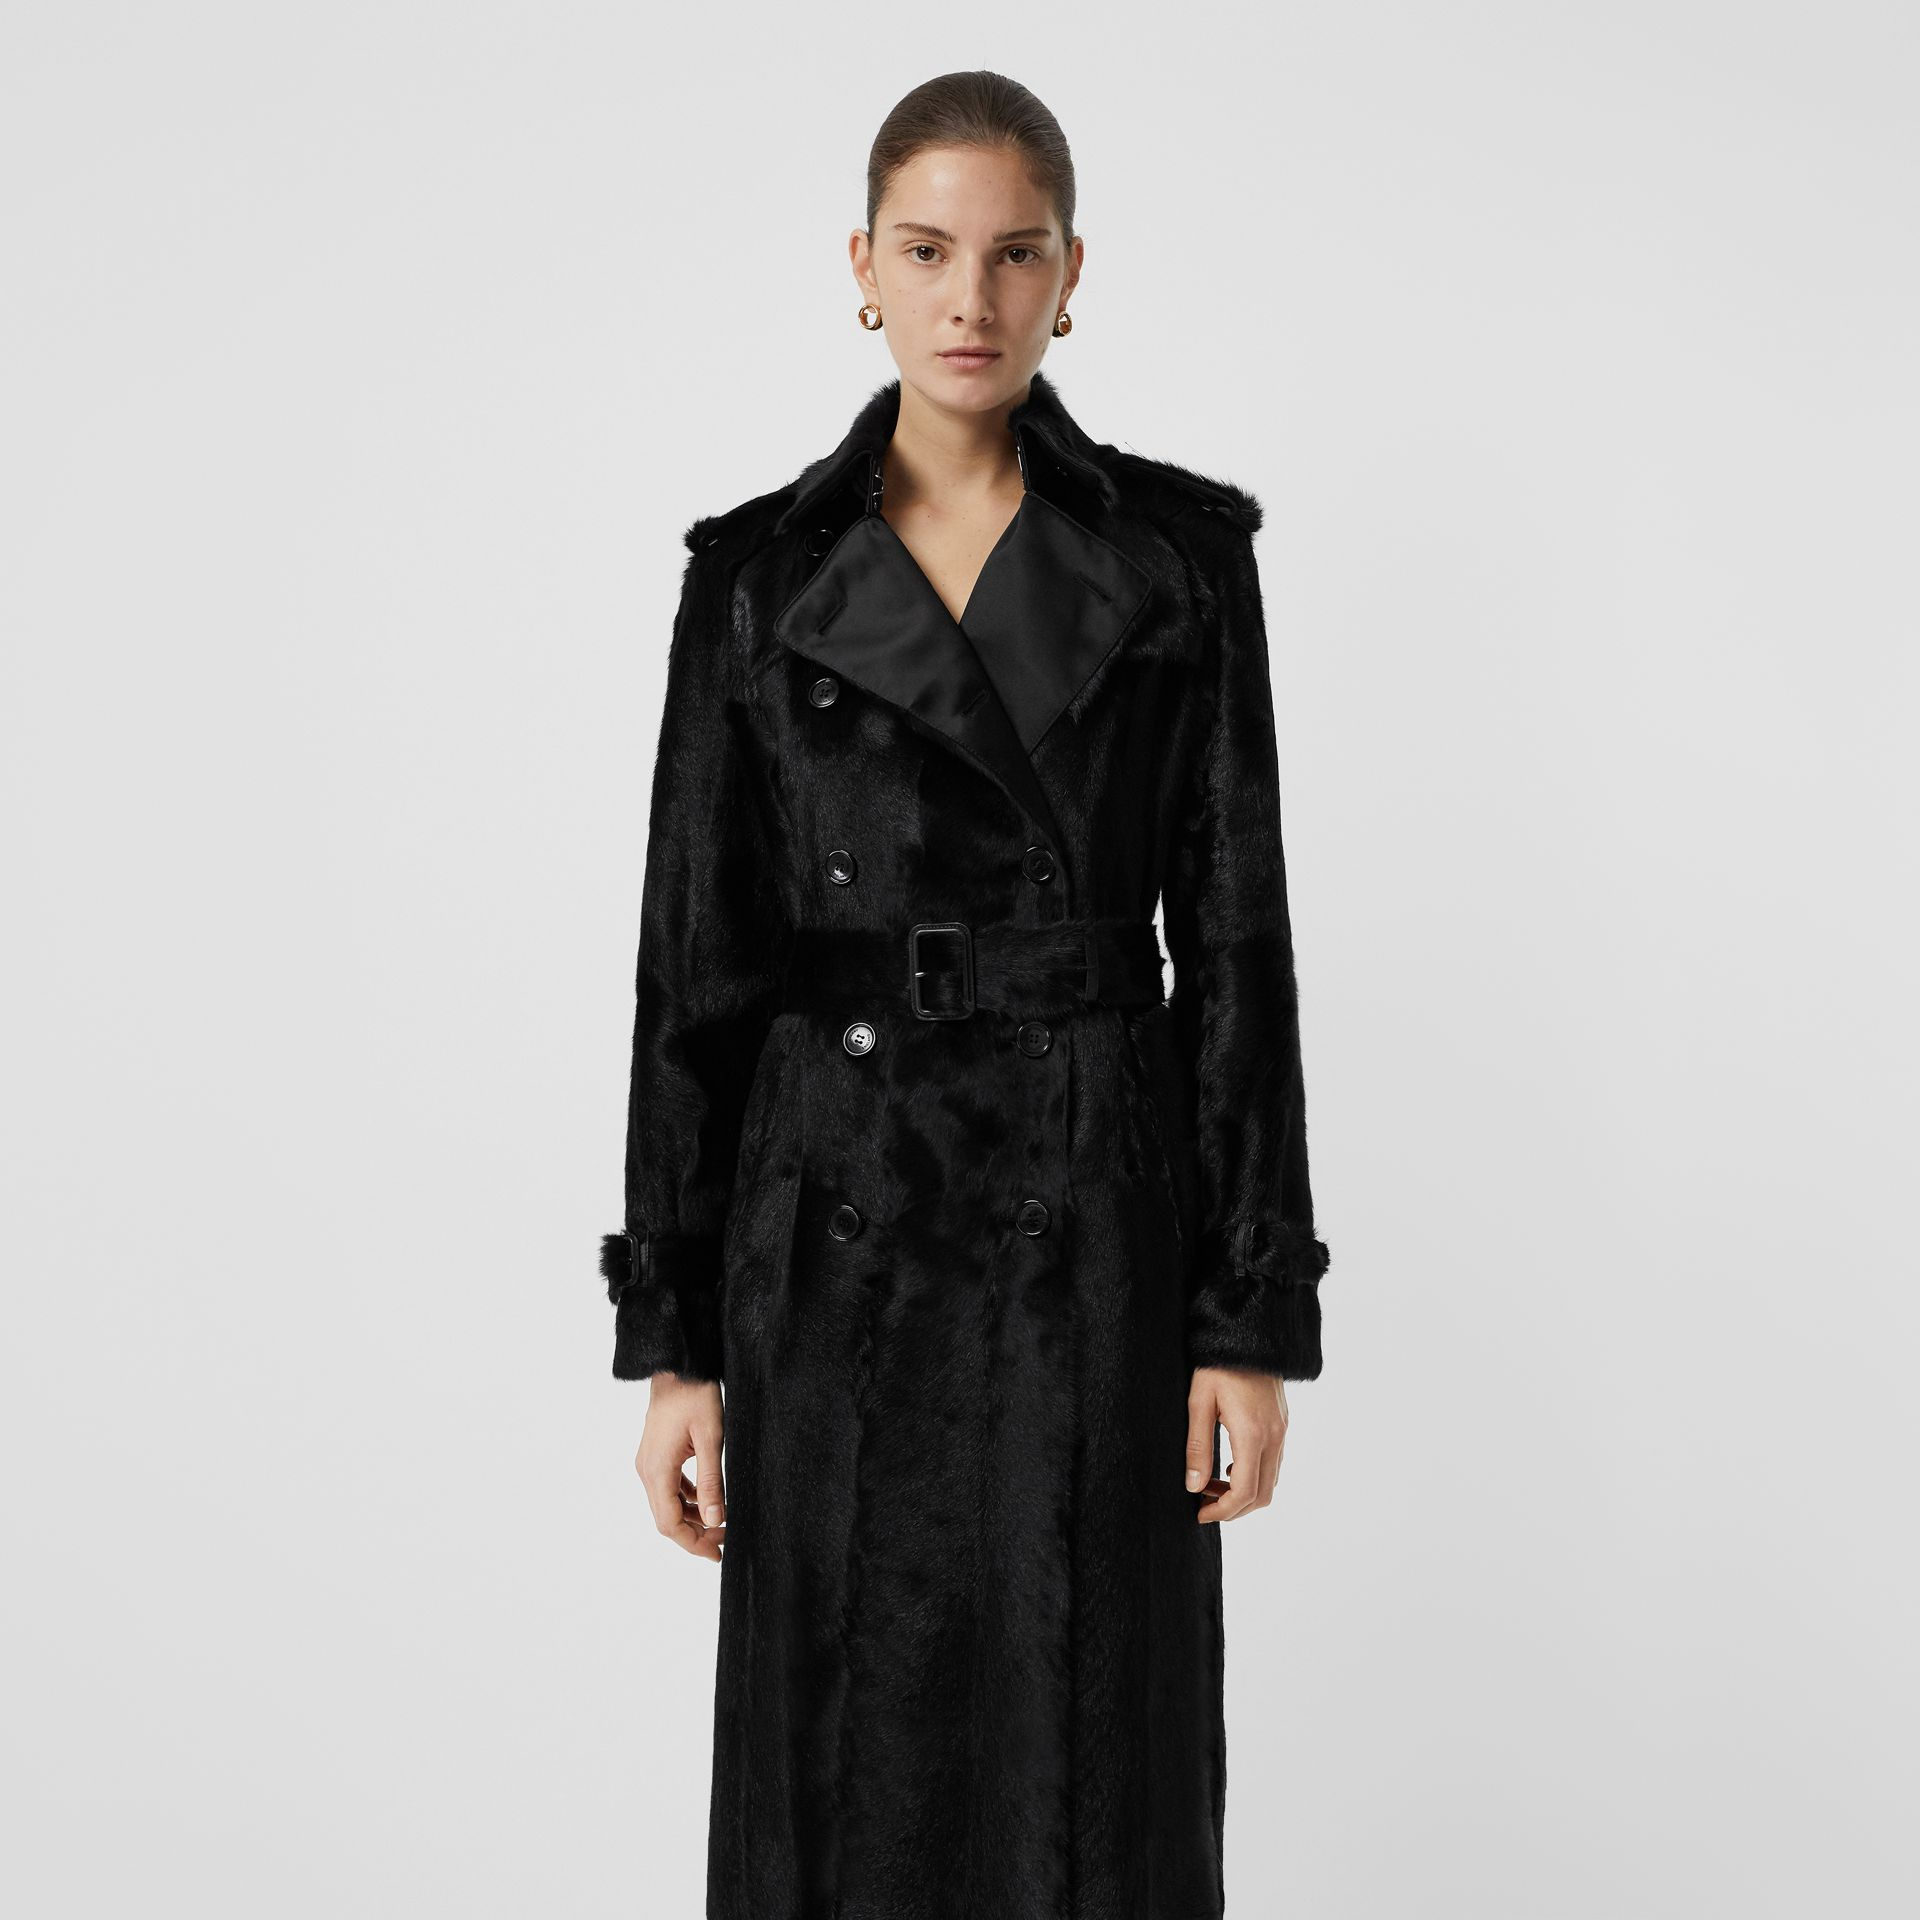 Goat Trench Coat in Black - Women | Burberry Australia - gallery image 7